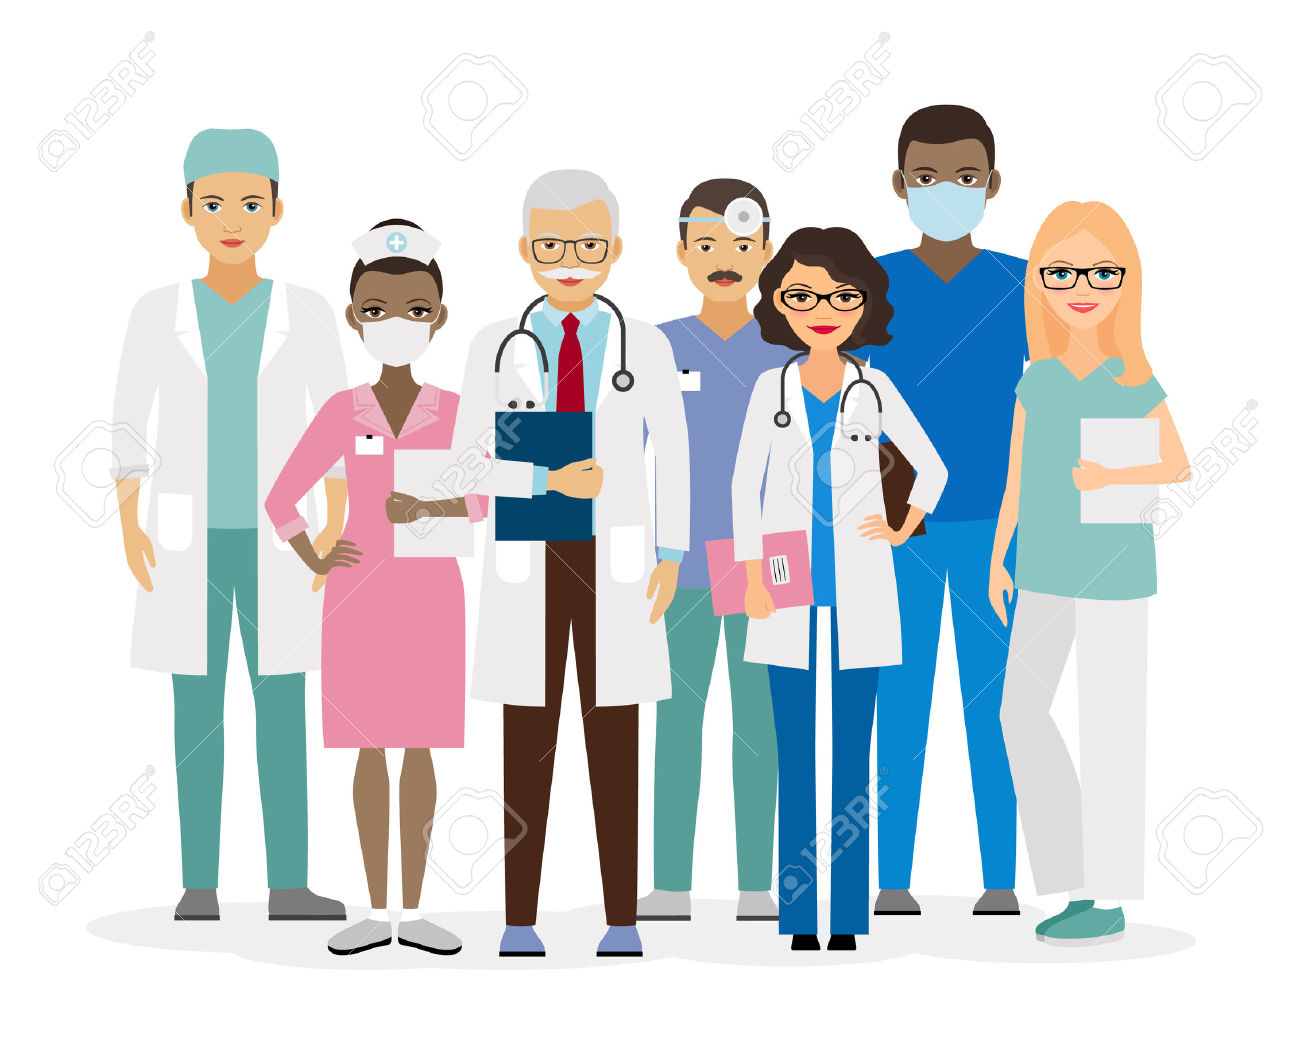 Medical Team. Group Of Hospital Workers Illustration Royalty Free.